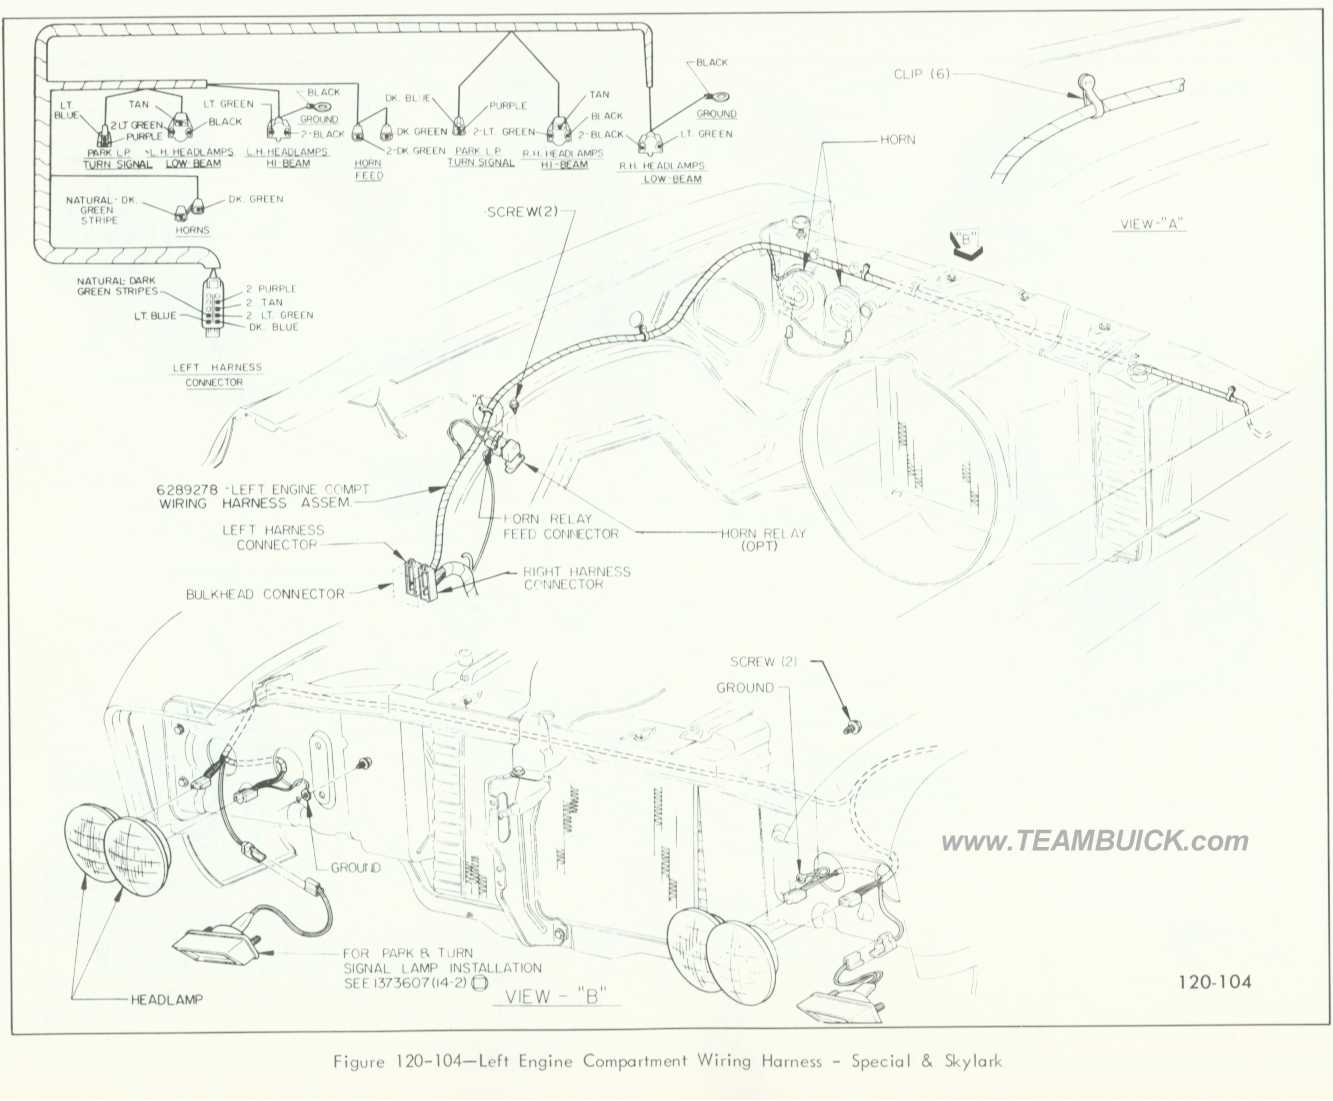 1966 Buick Skylark Wiring Harness Layout Diagrams 1963 Special And Left Engine Compartment 1969